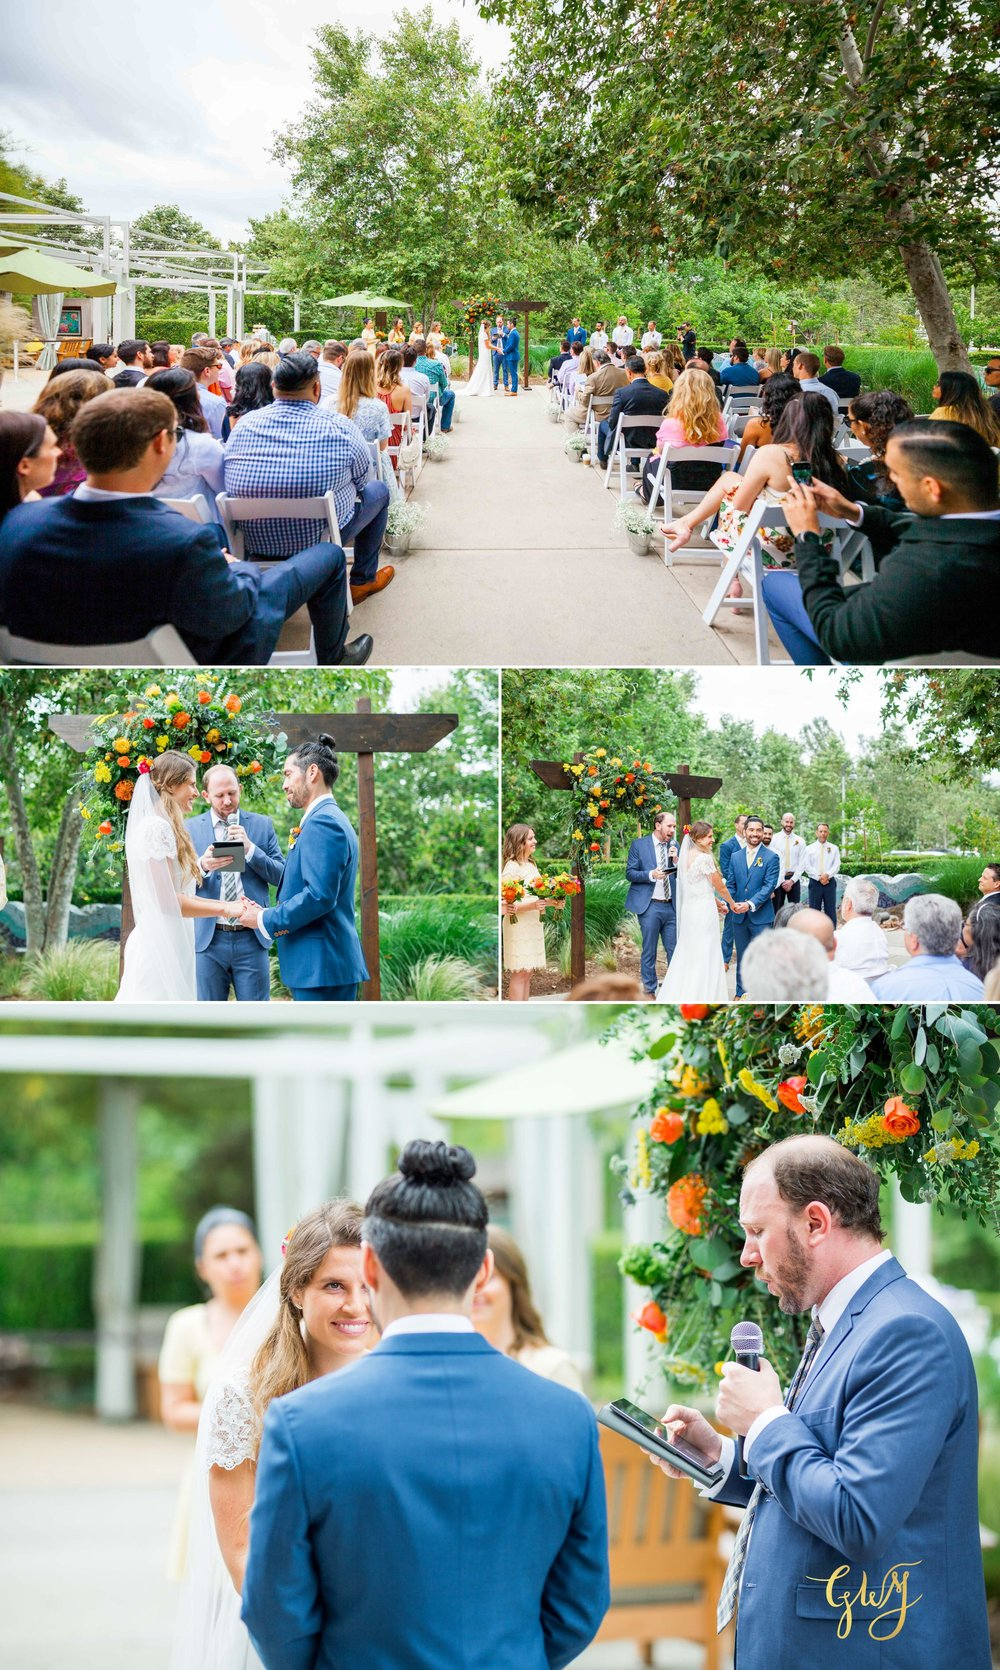 Jose + Sarah Norman P Murray Mission Viejo Summer Wedding by Glass Woods Media 27.jpg